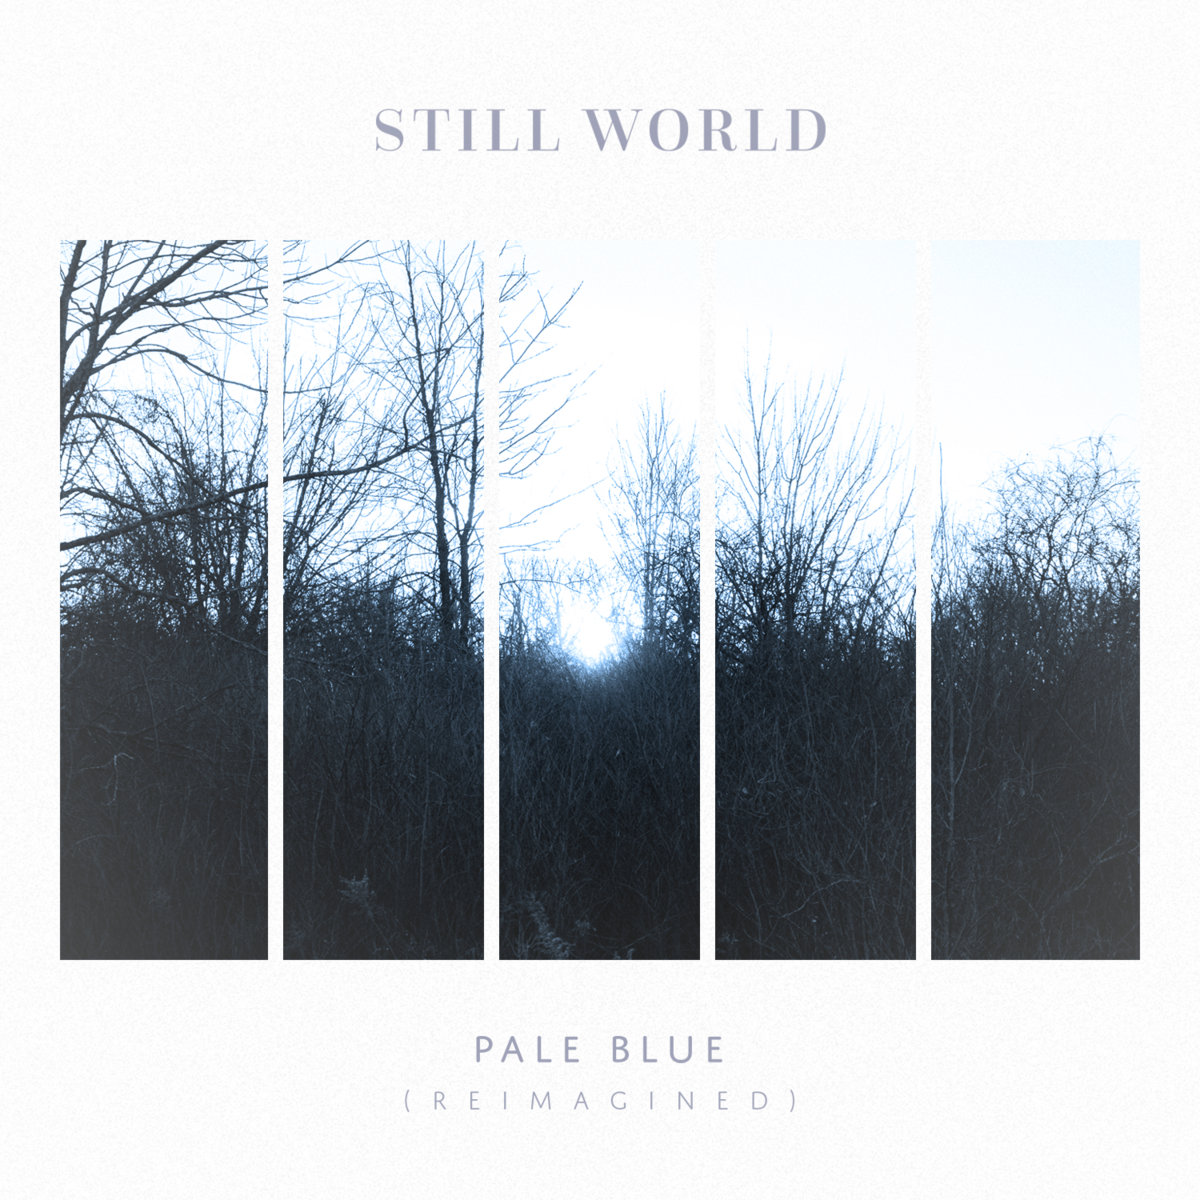 Pale Blue (Reimagined) by Still World